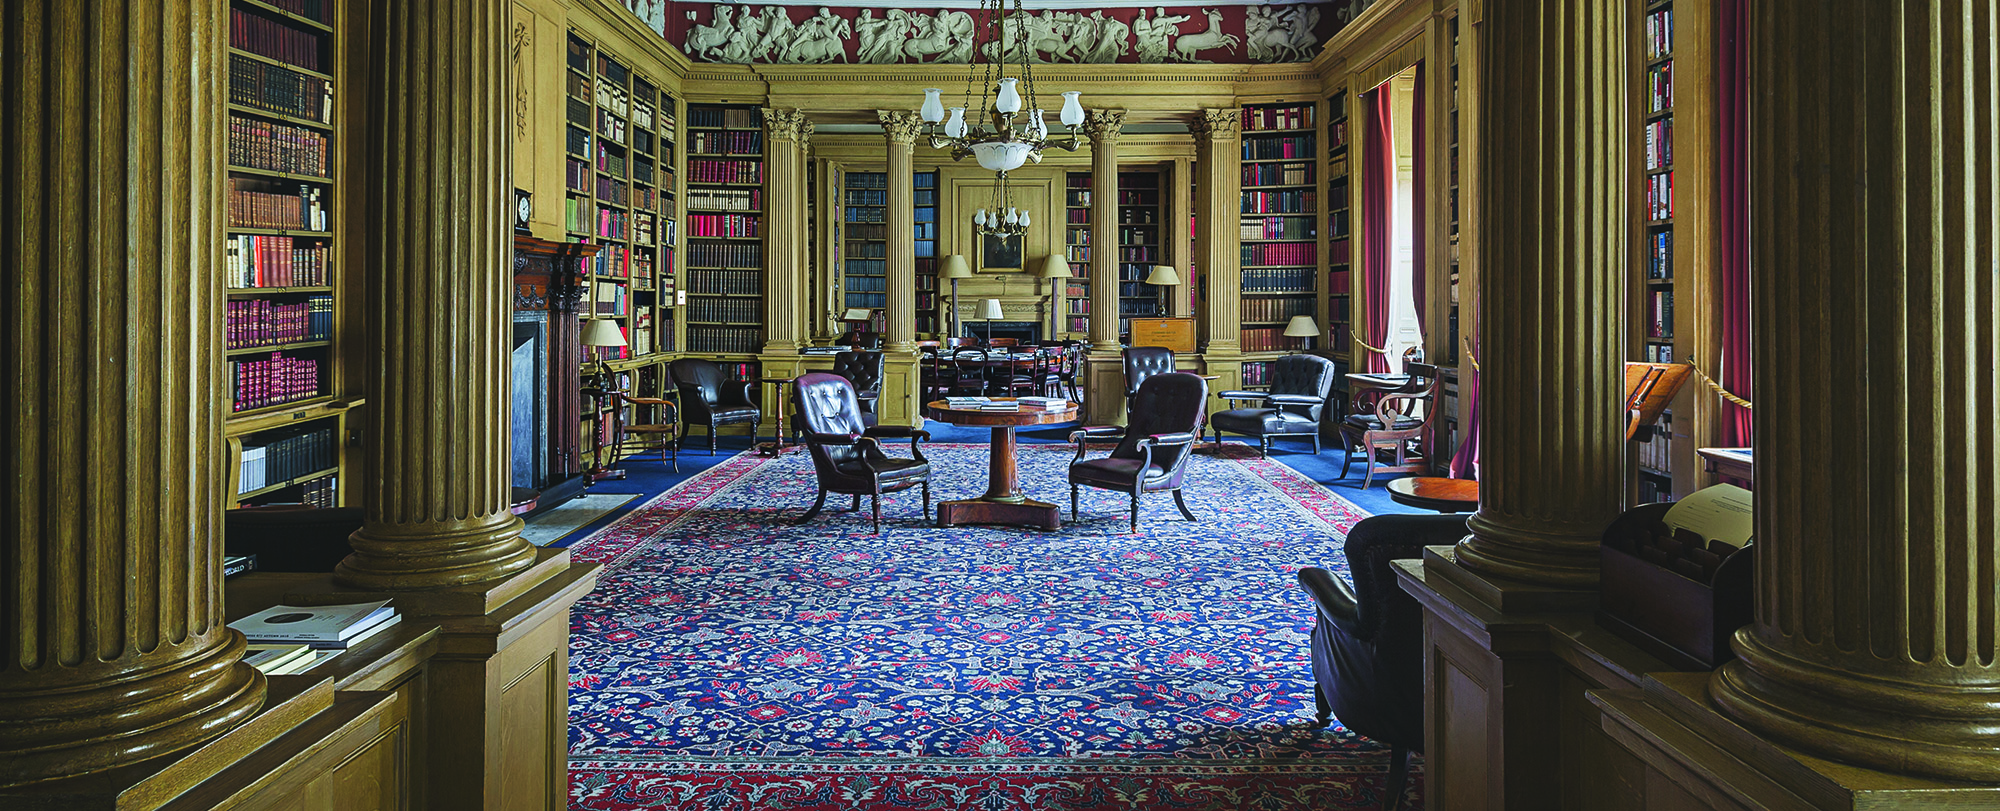 One of the most beautiful rooms in London; Library in 106 Pall Mall